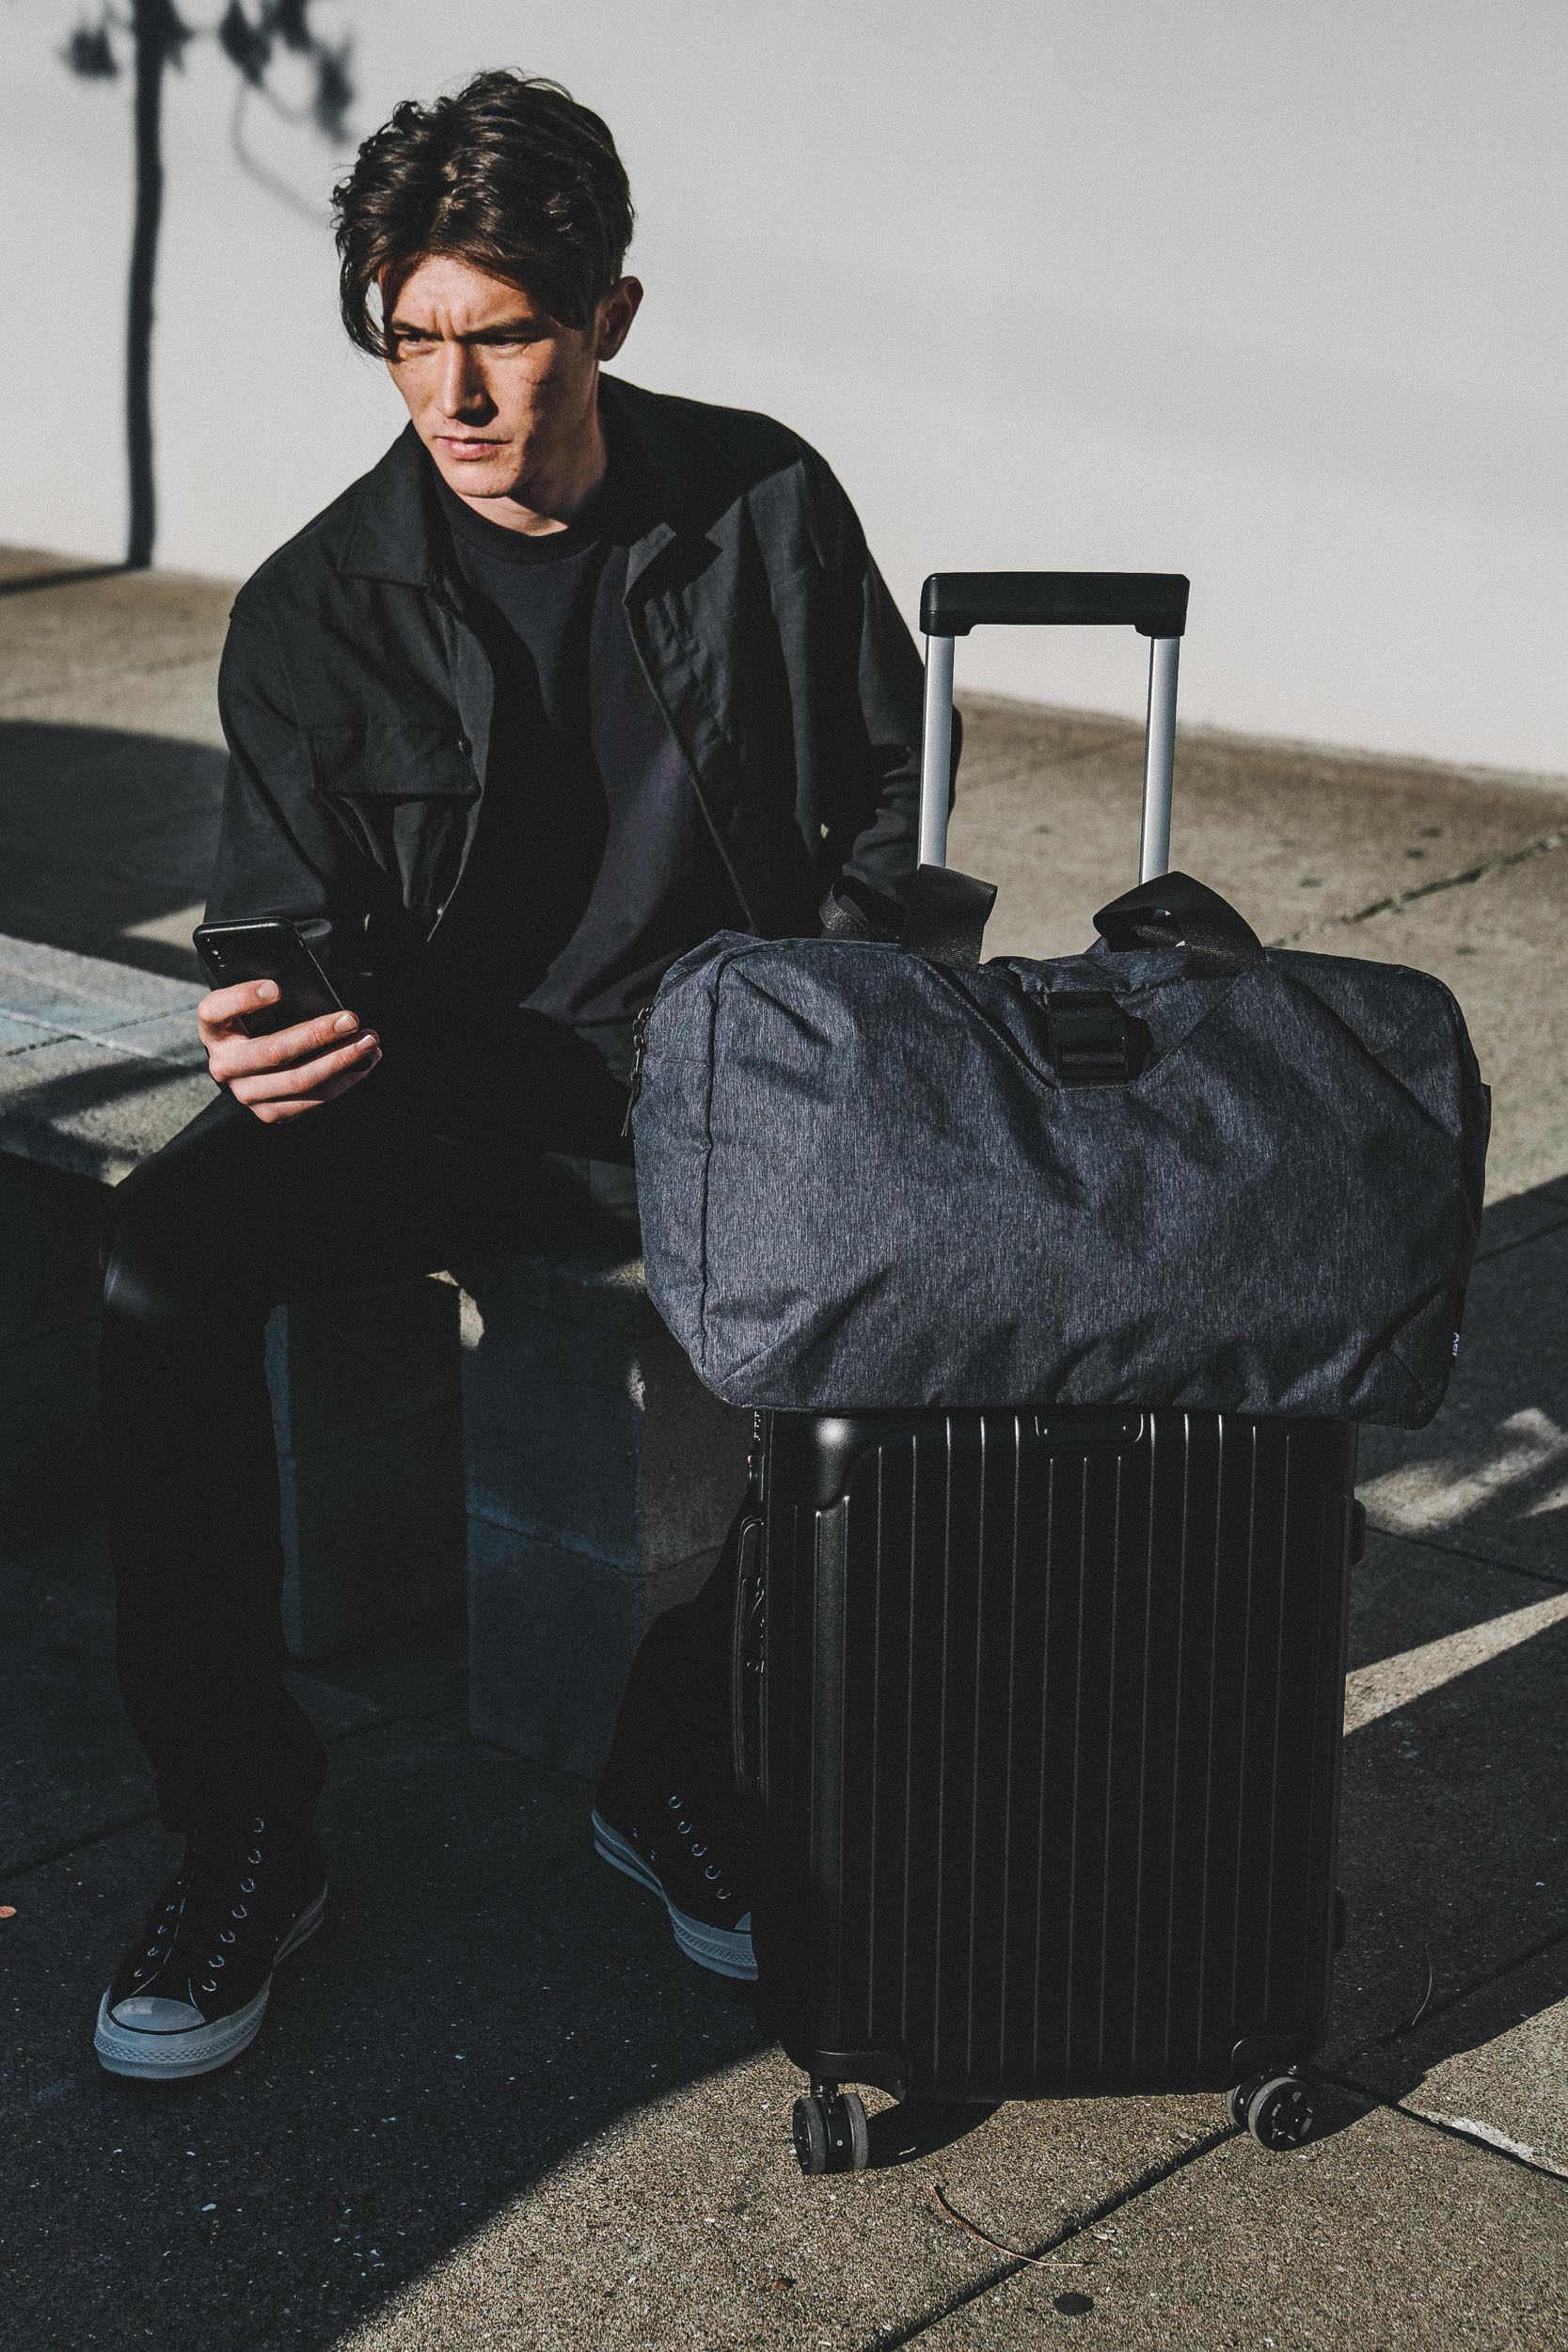 The Go Duffel provides overflow storage for gifts or souvenirs.